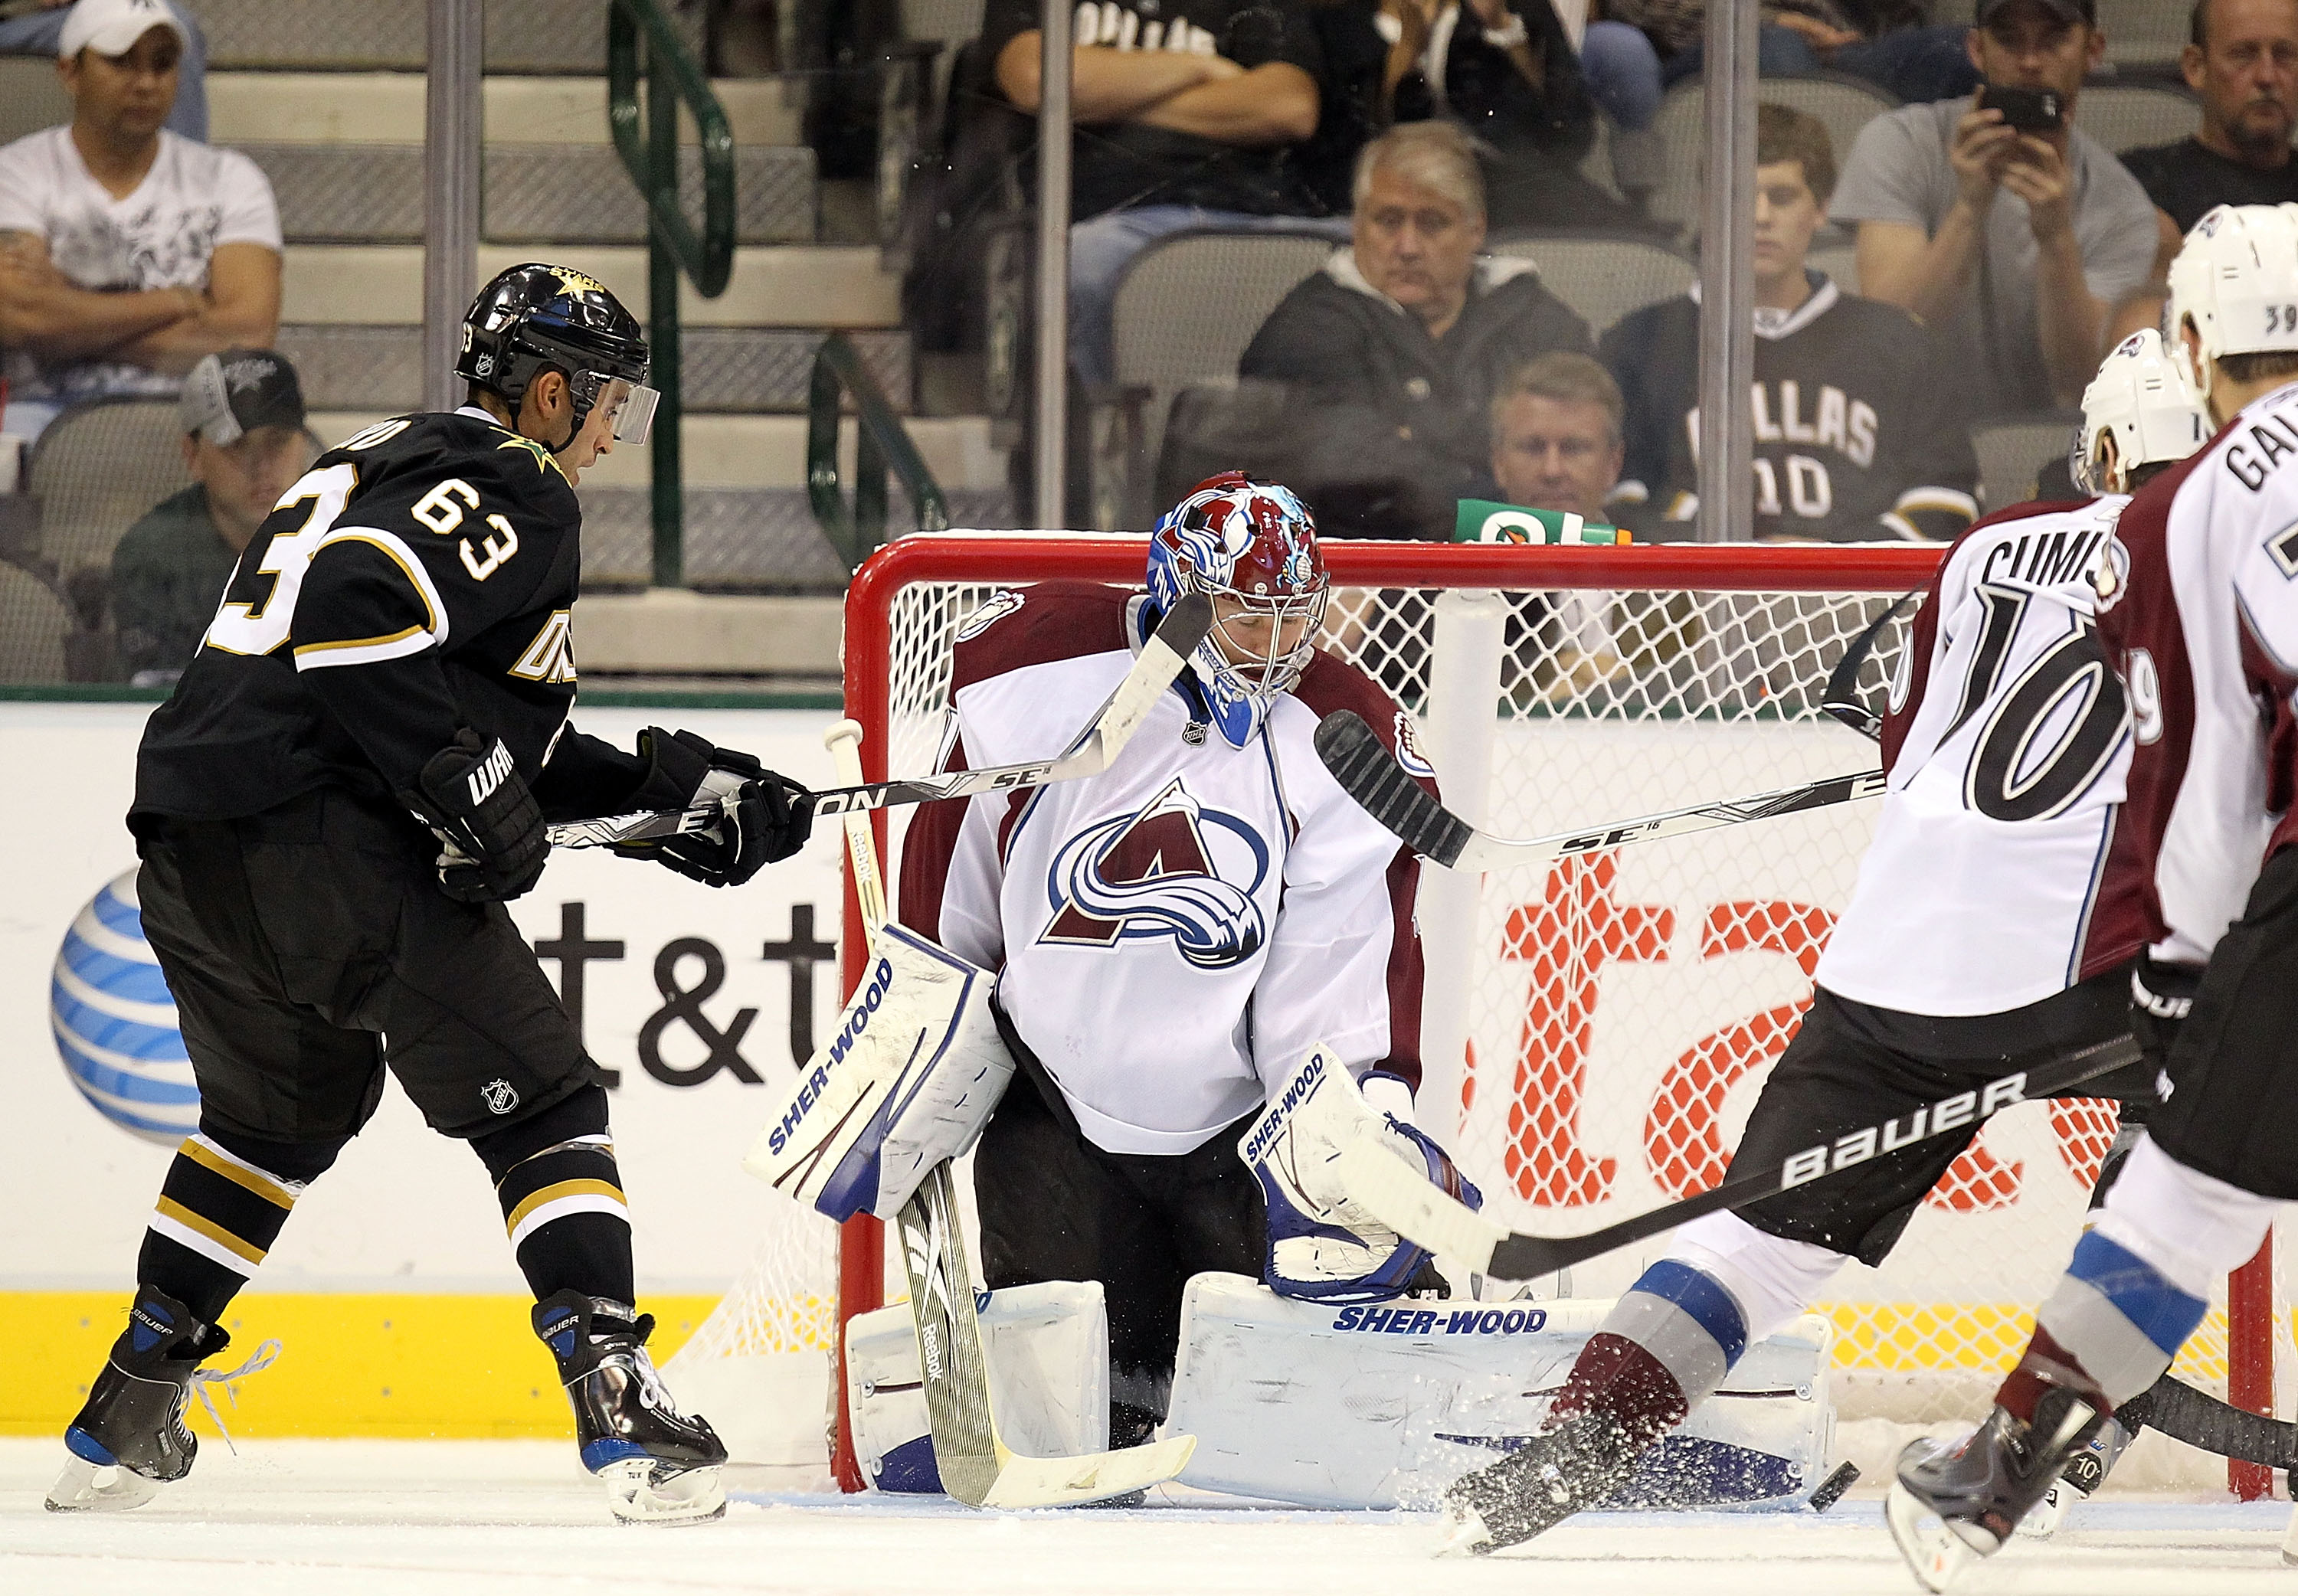 DALLAS - SEPTEMBER 30:  Goaltender Craig Anderson #41 of the Colorado Avalanche makes a save against Mike Ribeiro #63 of the Dallas Stars in the second period at American Airlines Center on September 30, 2010 in Dallas, Texas.  (Photo by Ronald Martinez/G